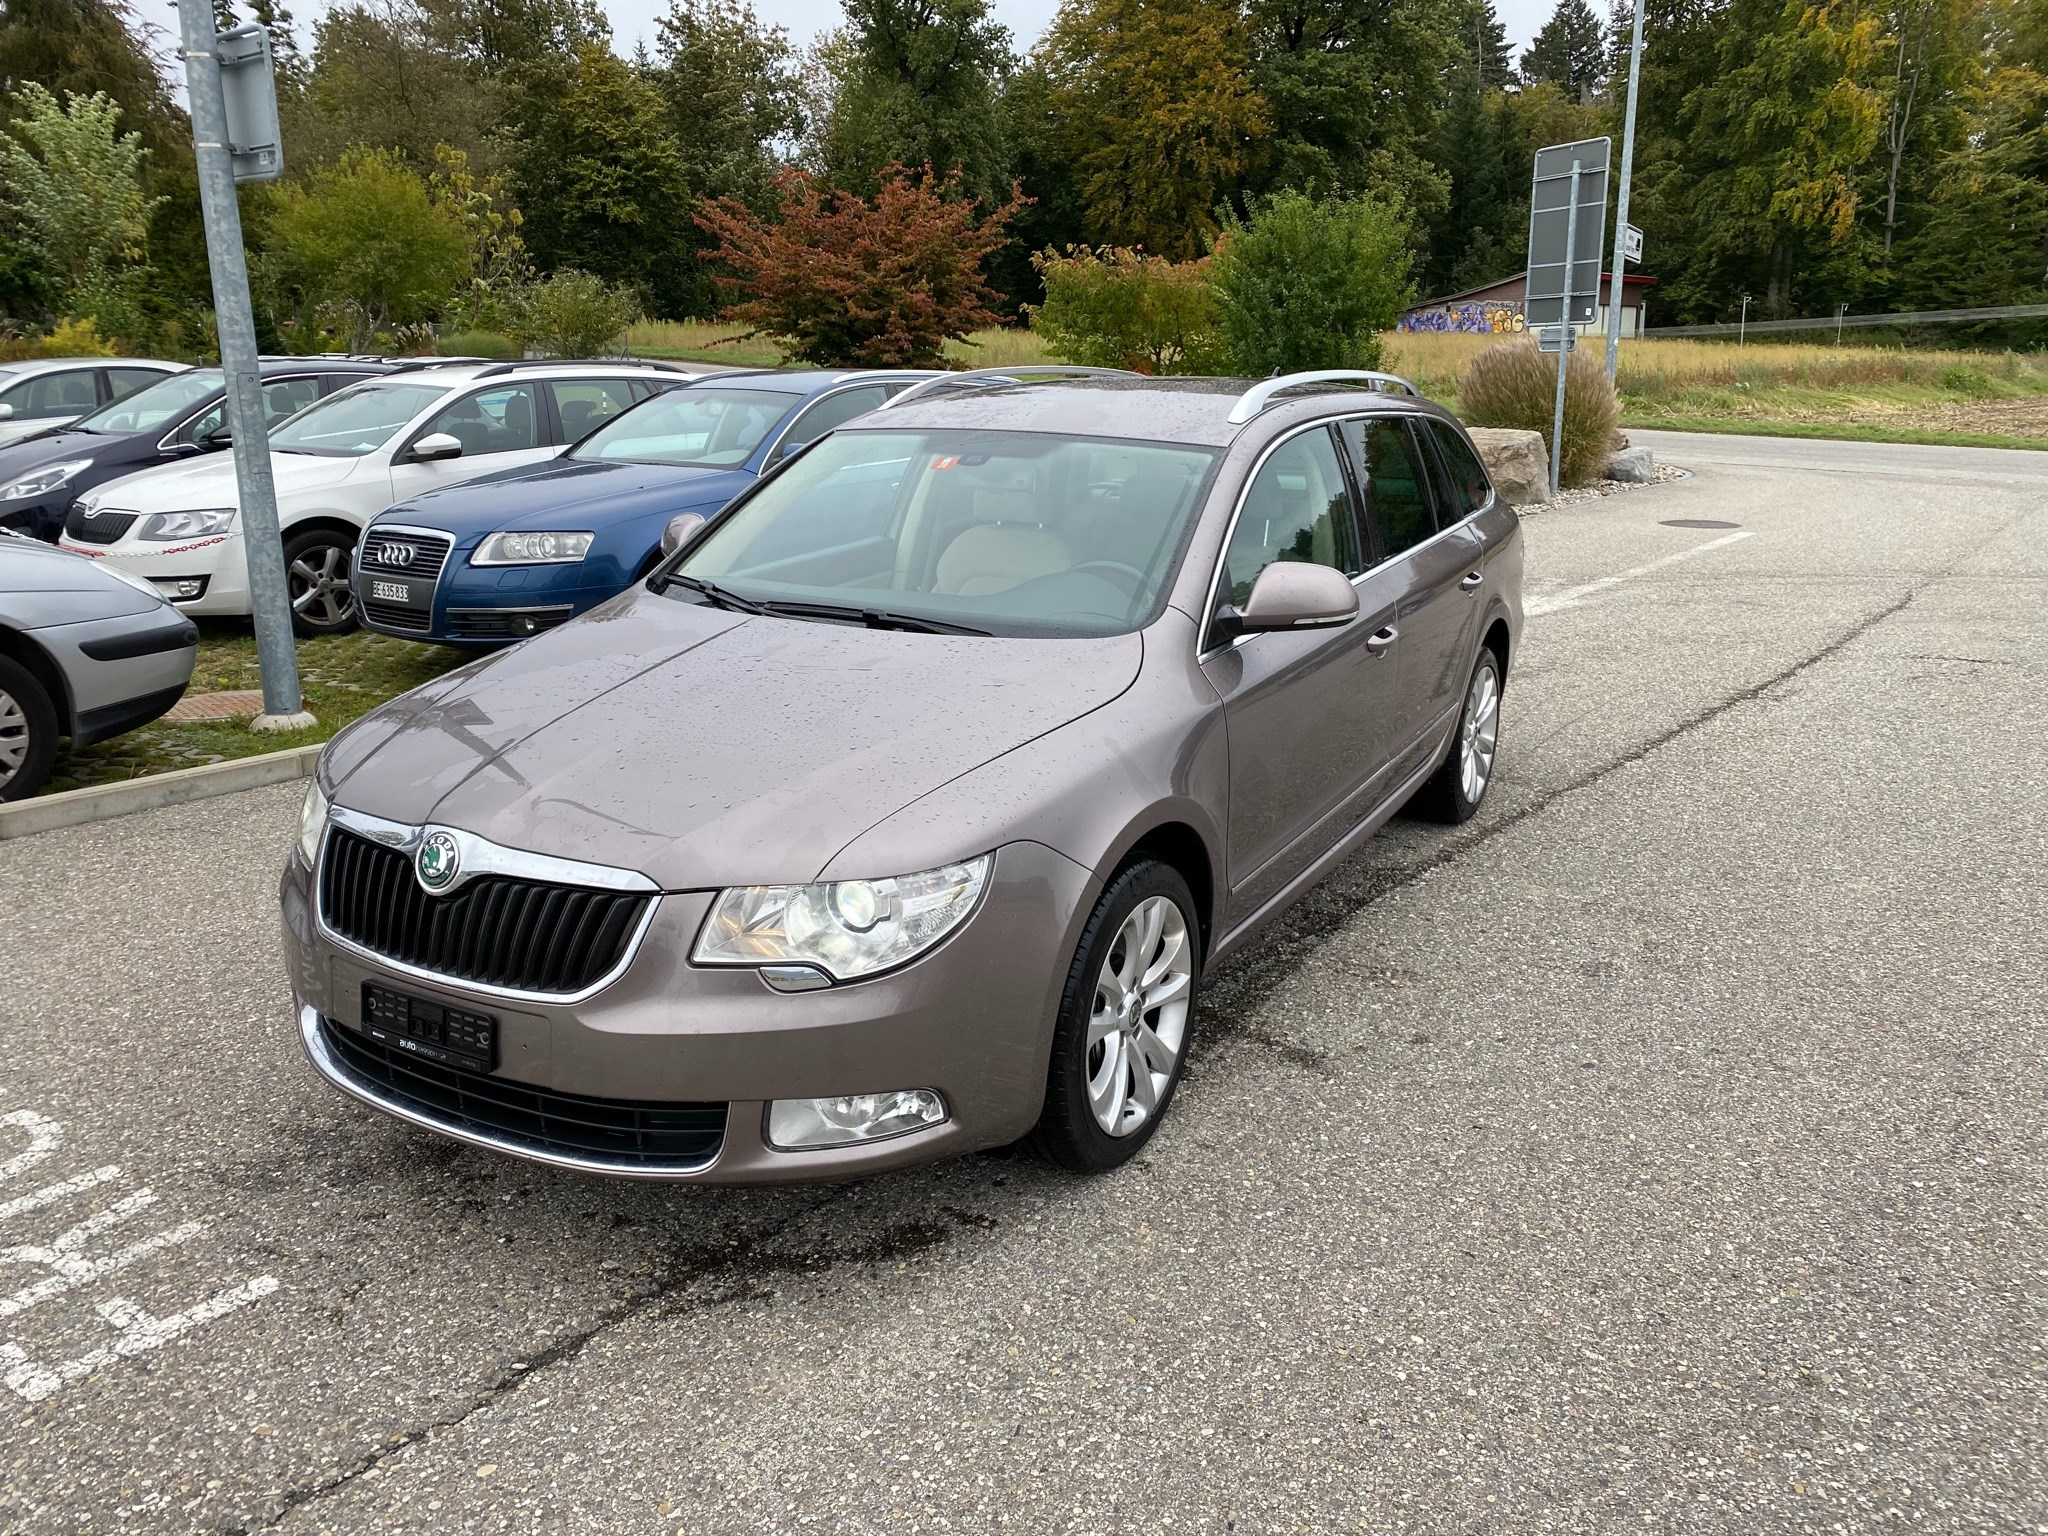 estate Skoda Superb Combi 3.6 FSI Ambition 4x4 DSG